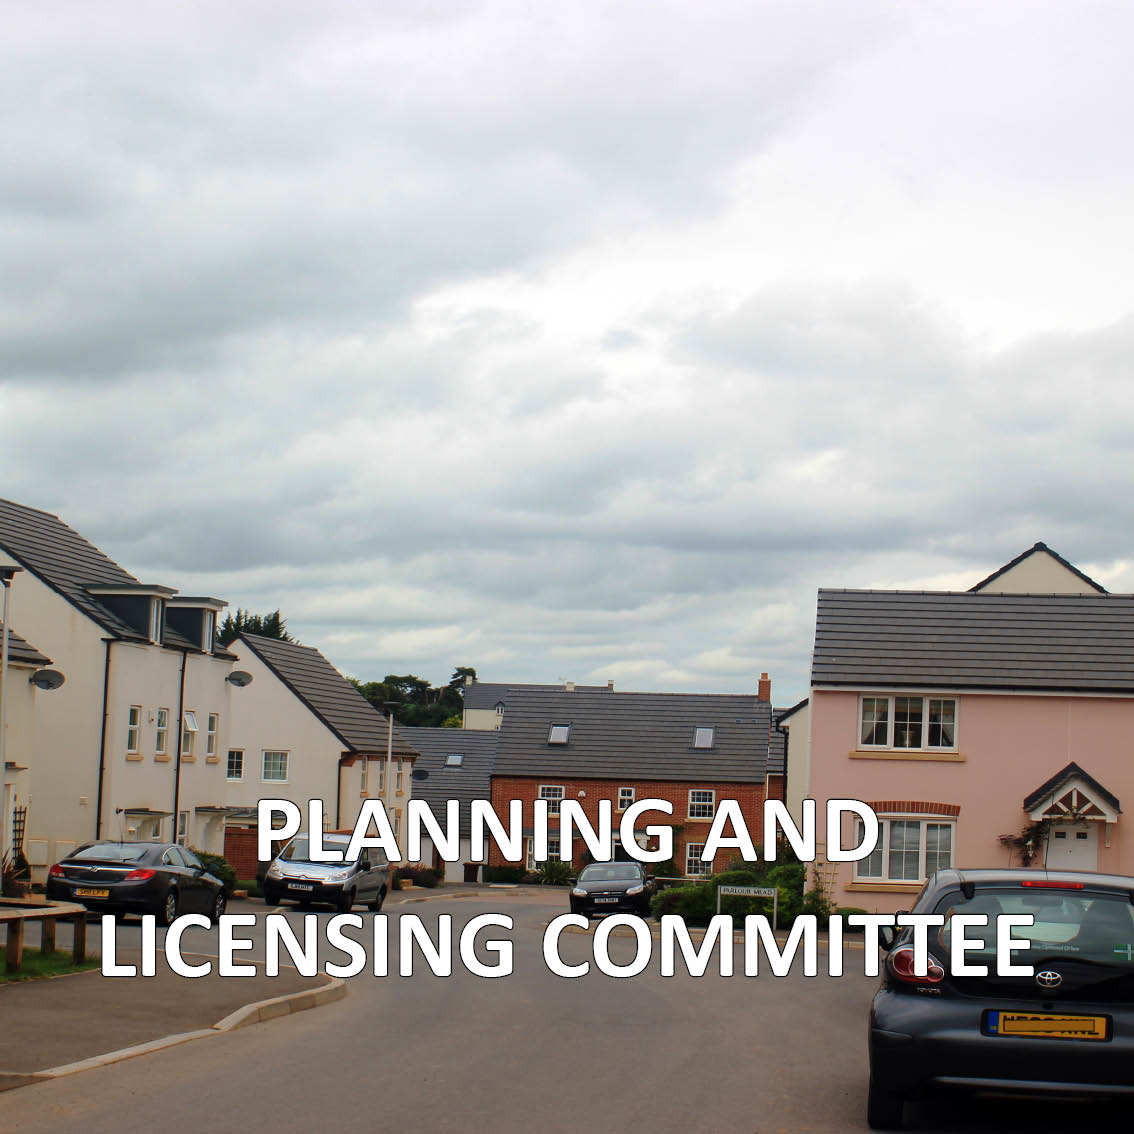 Hyperlink to the Planning and Licensing Committee meetings